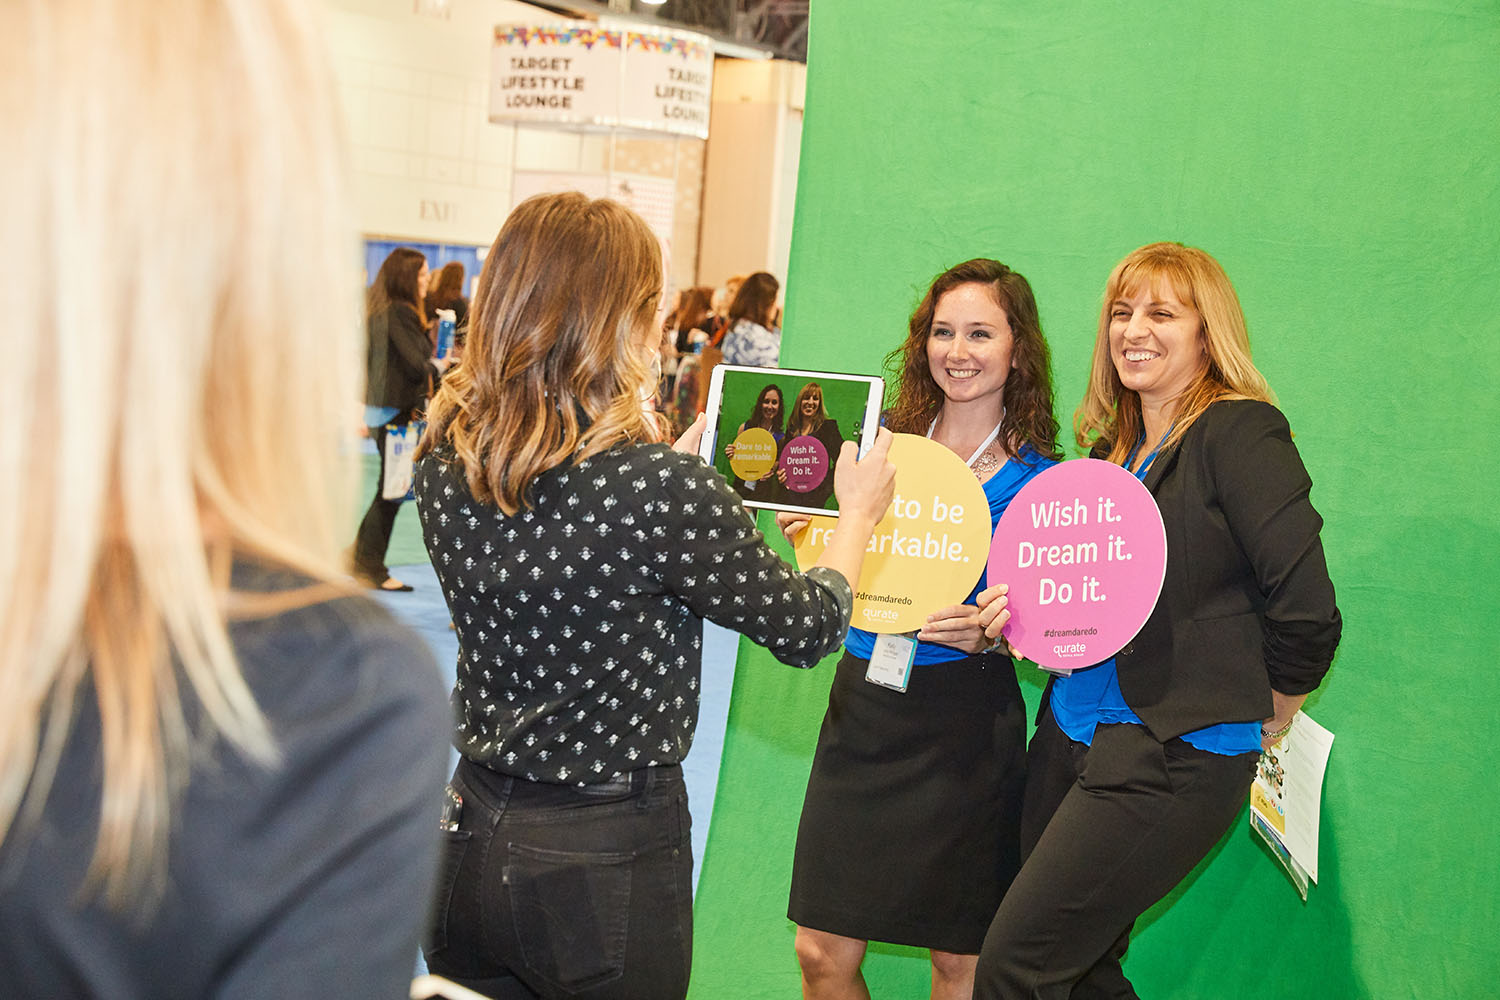 Image 1_PA Conference for Women attendees particpate in Qurate Retail Group's #dreamdaredo social activation.